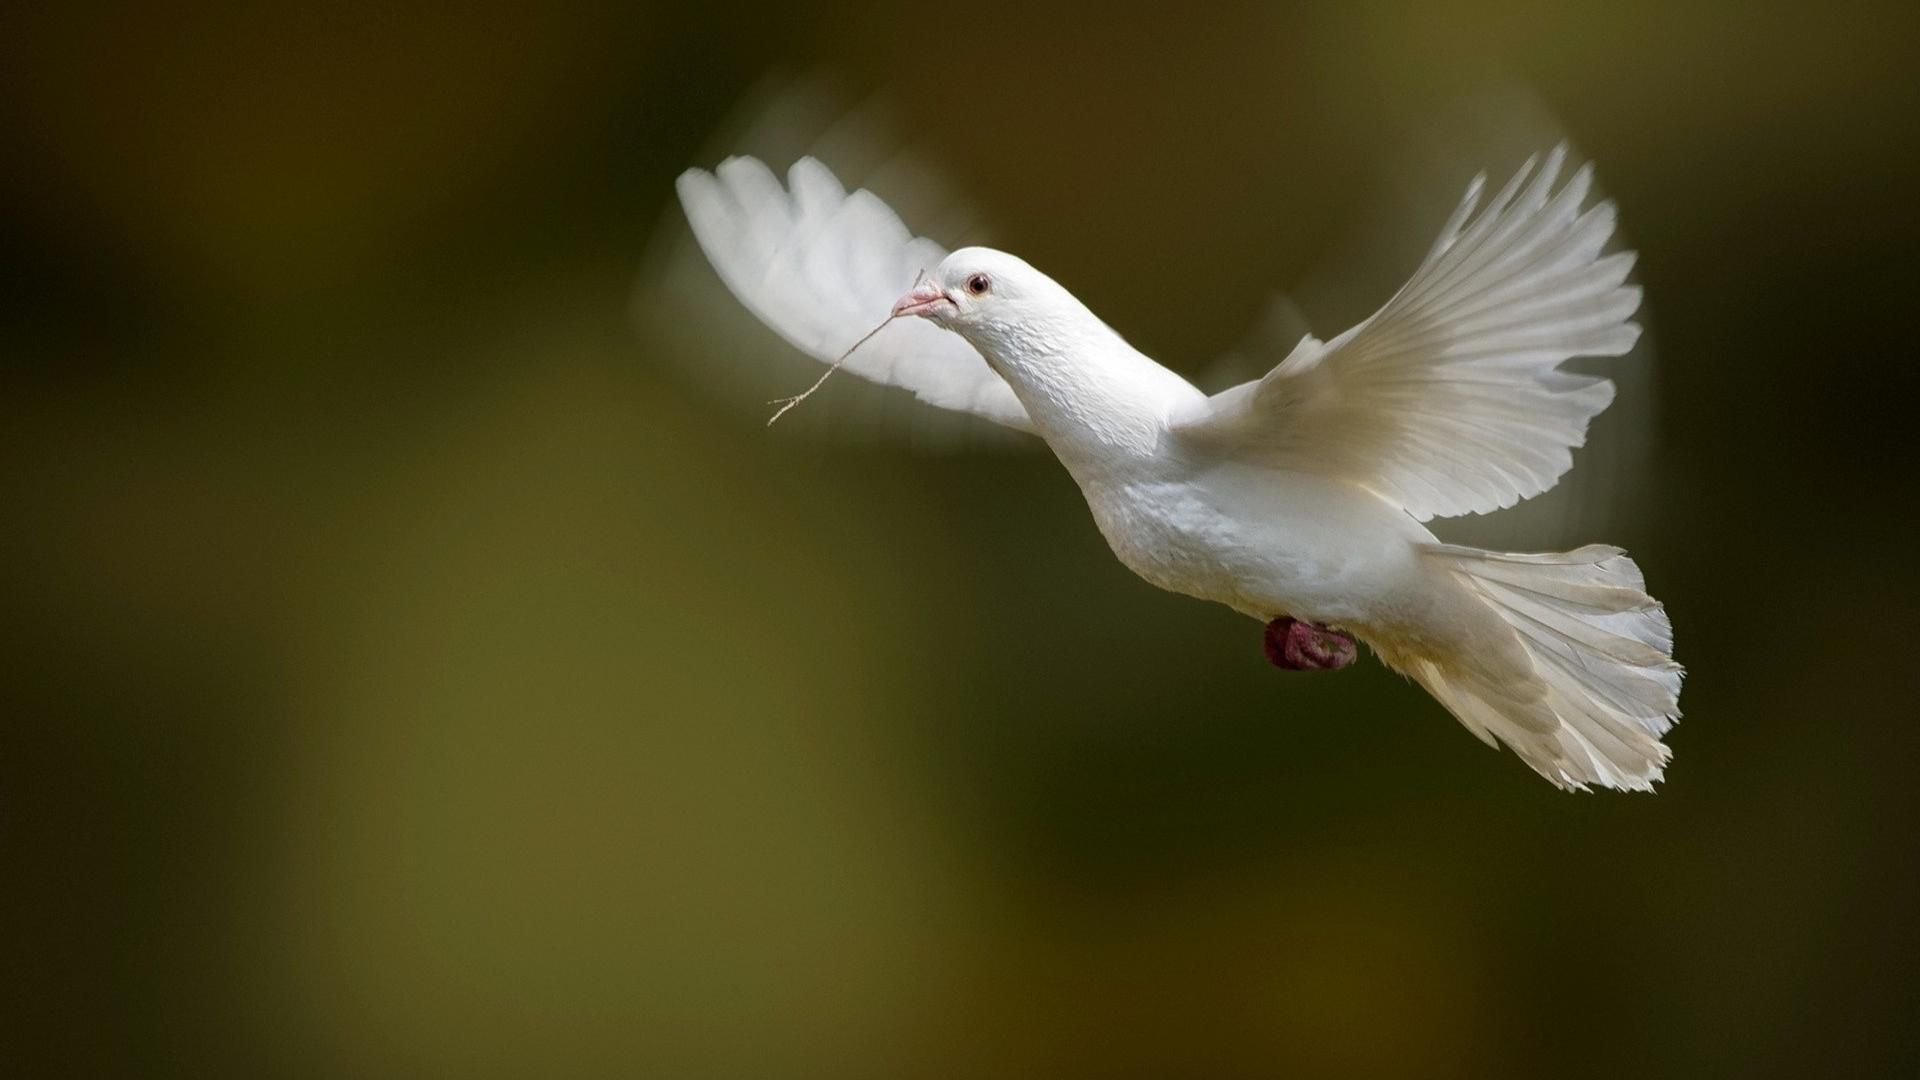 Doves dove wallpapers